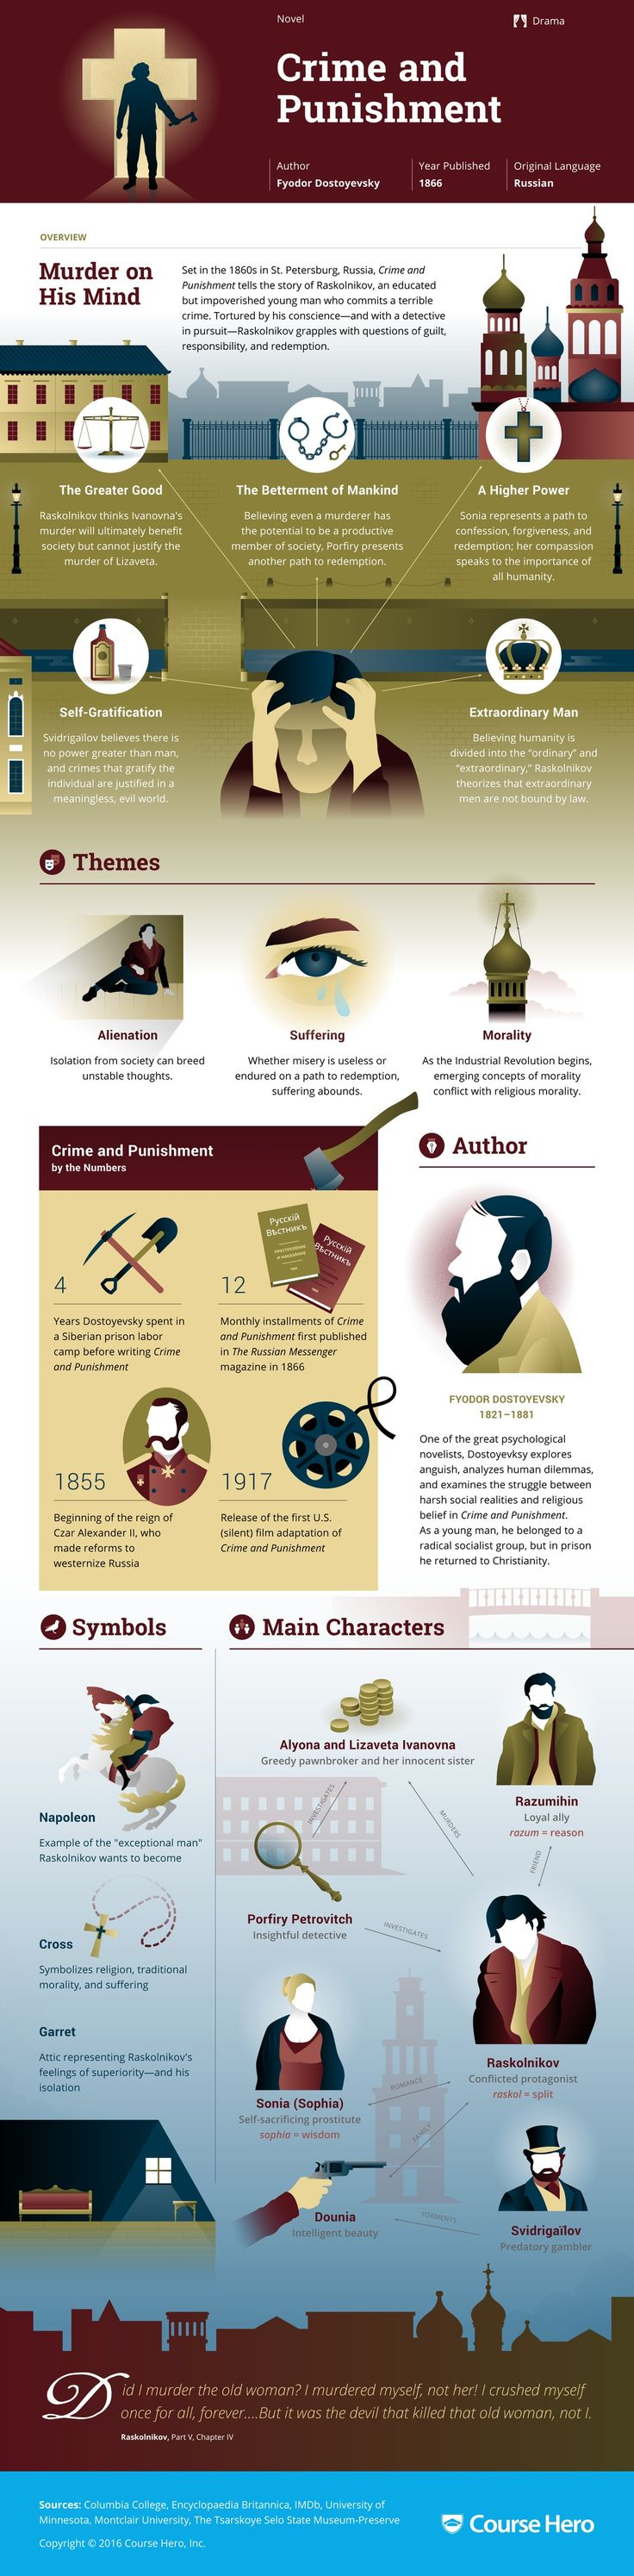 Crime and Punishment Infographic | Course Hero